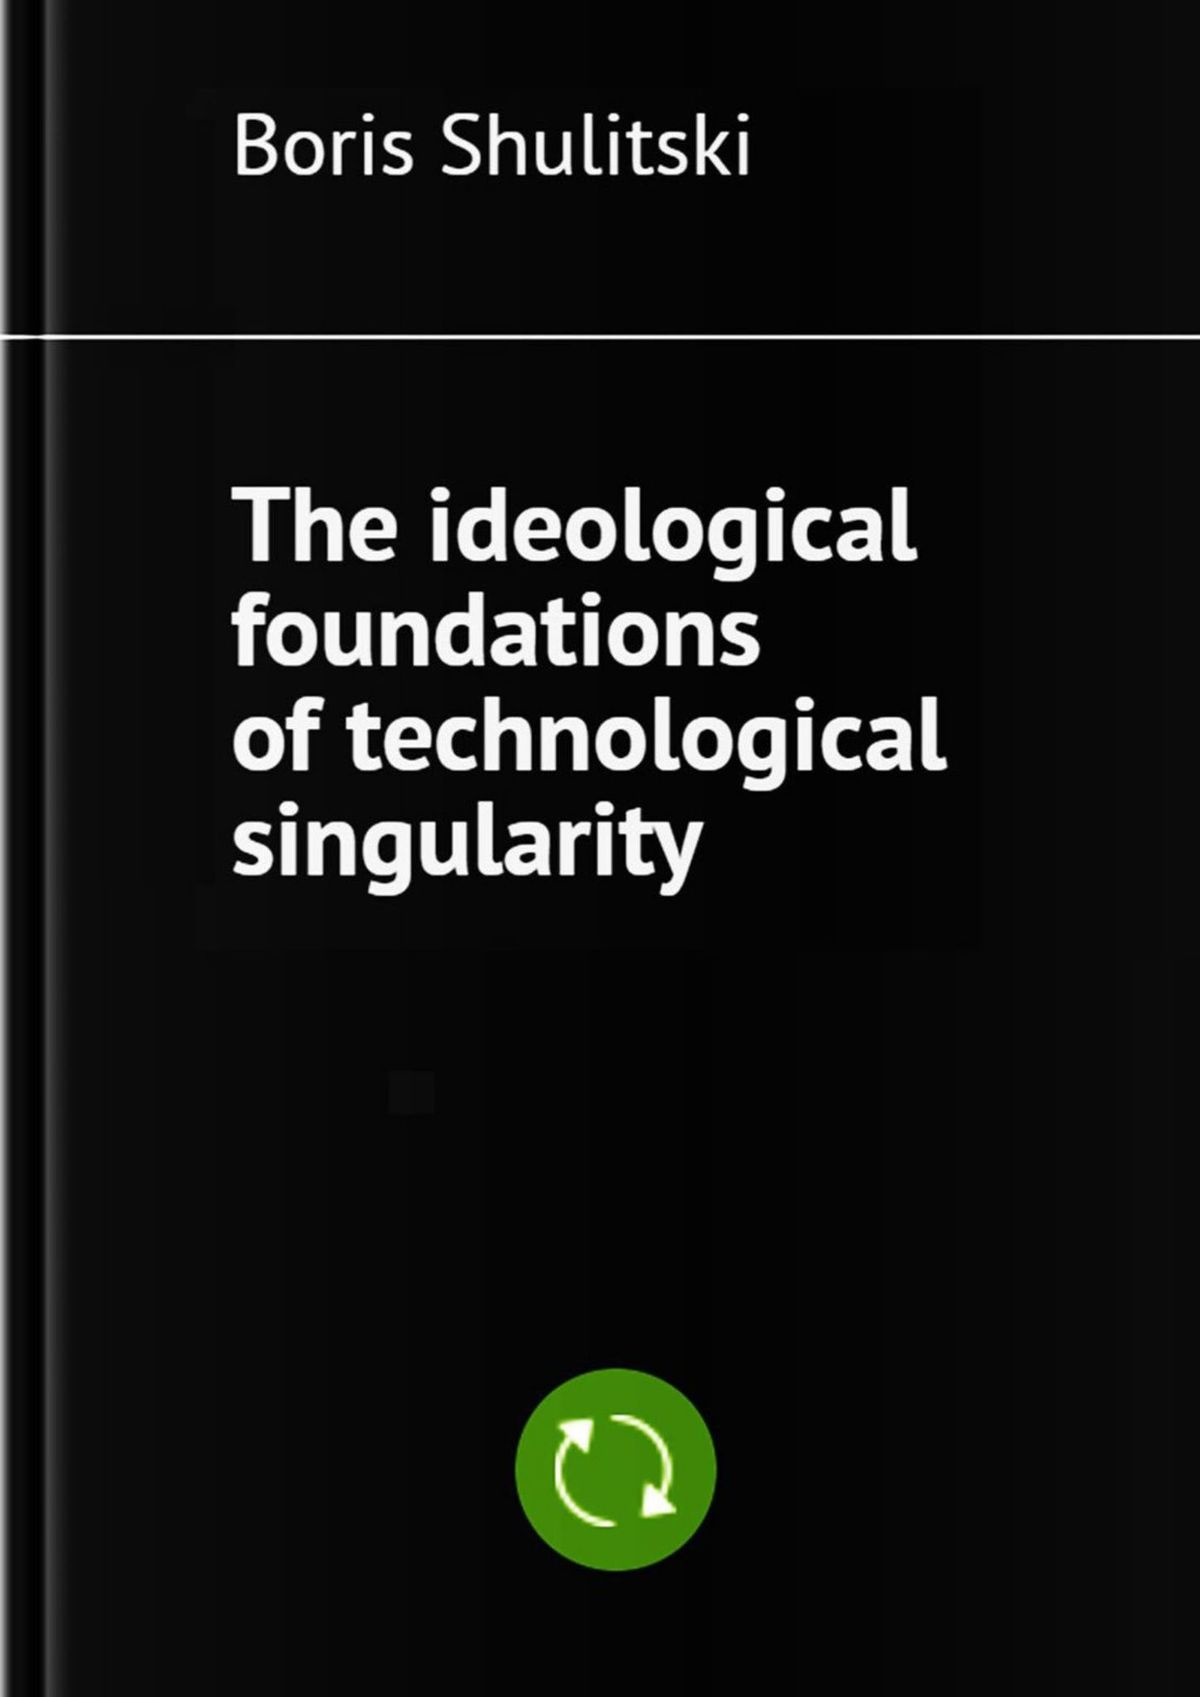 The ideological foundations oftechnological singularity